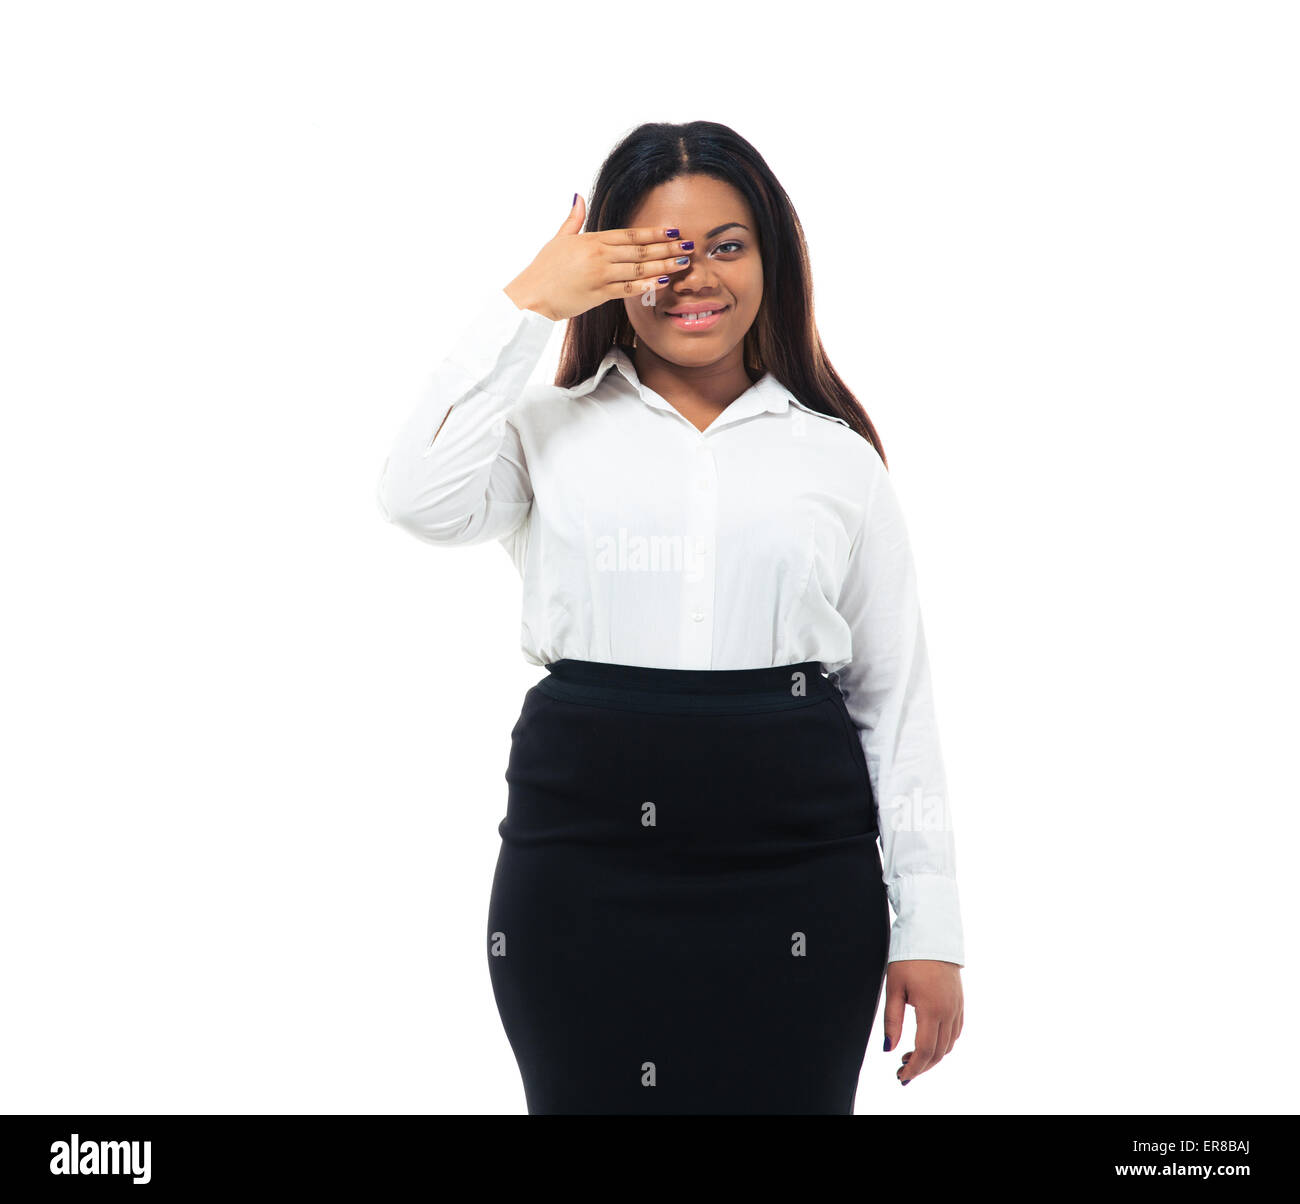 Afro american businesswoman covering one eye with hand isolated on a white background. Looking at camera - Stock Image